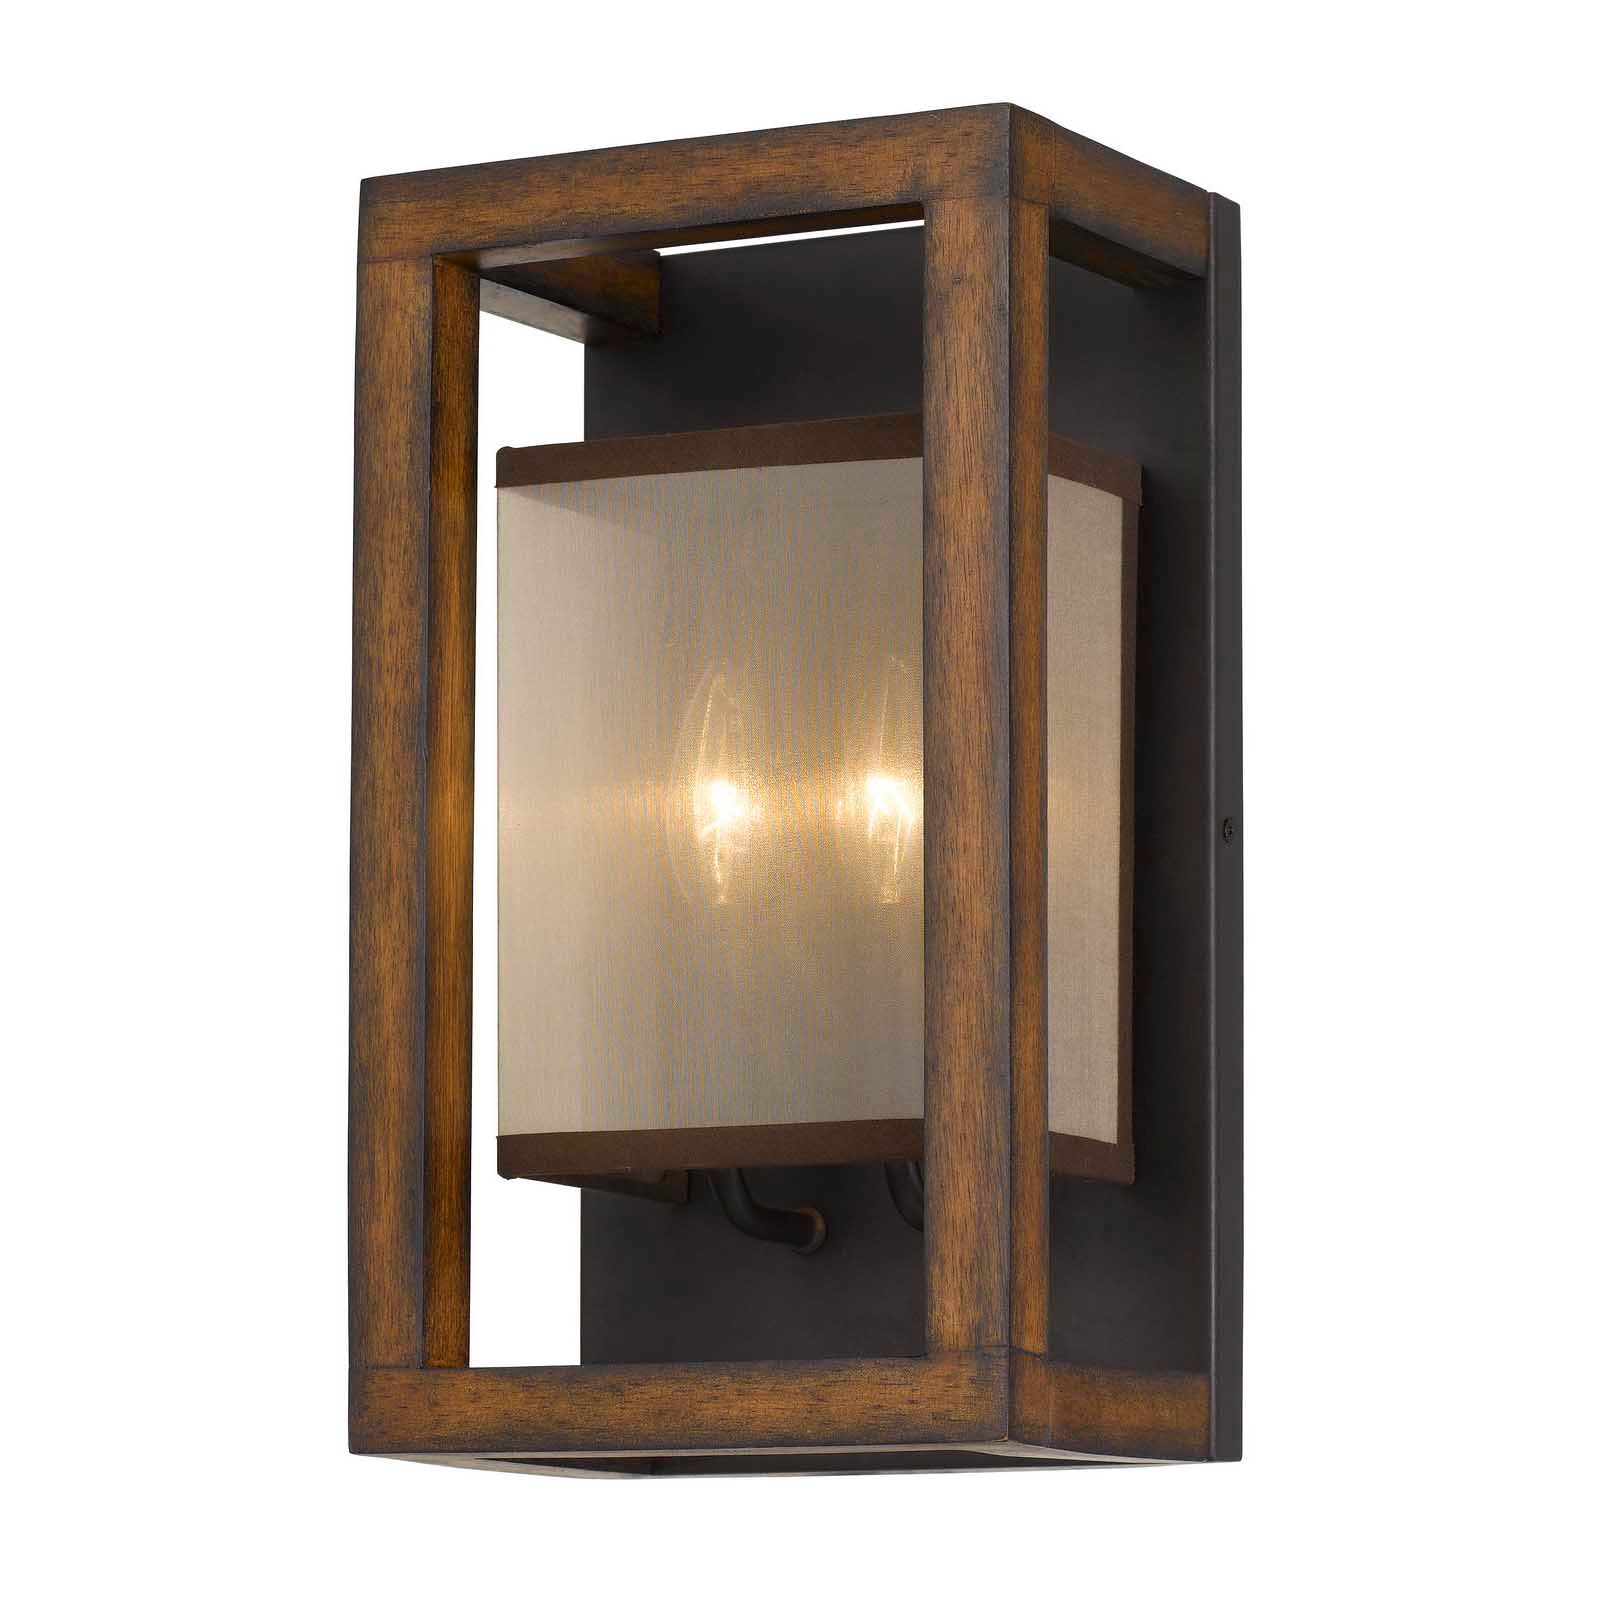 What Are Best Wall Sconces for the Living Room?